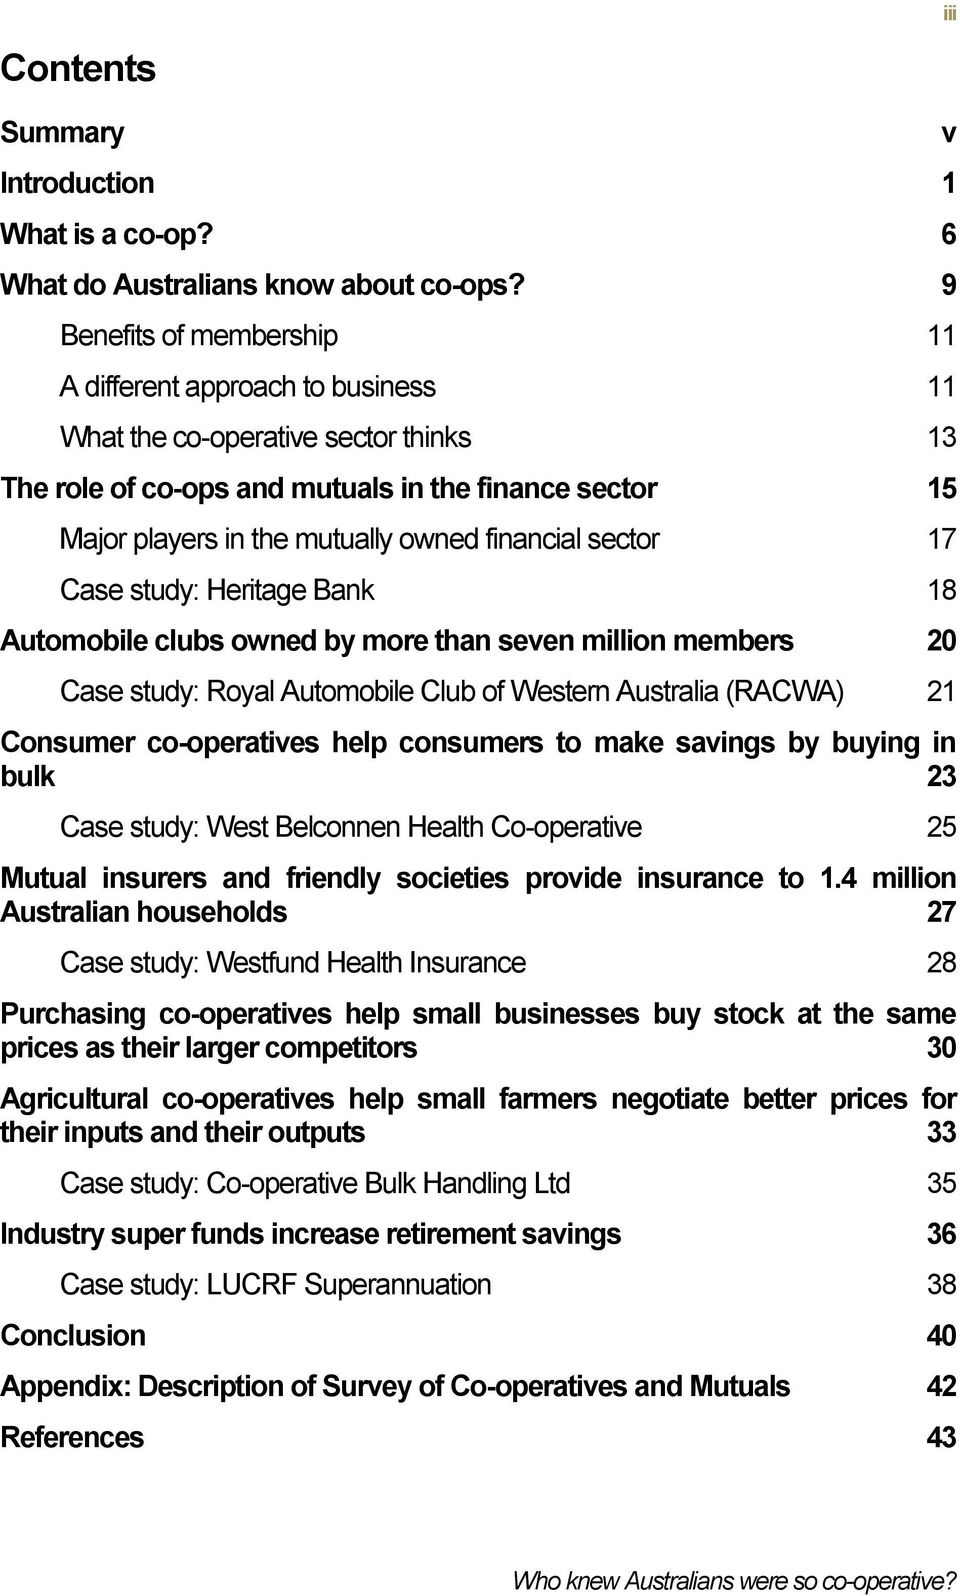 financial sector 17 Case study: Heritage Bank 18 Automobile clubs owned by more than seven million members 20 Case study: Royal Automobile Club of Western Australia (RACWA) 21 Consumer co-operatives